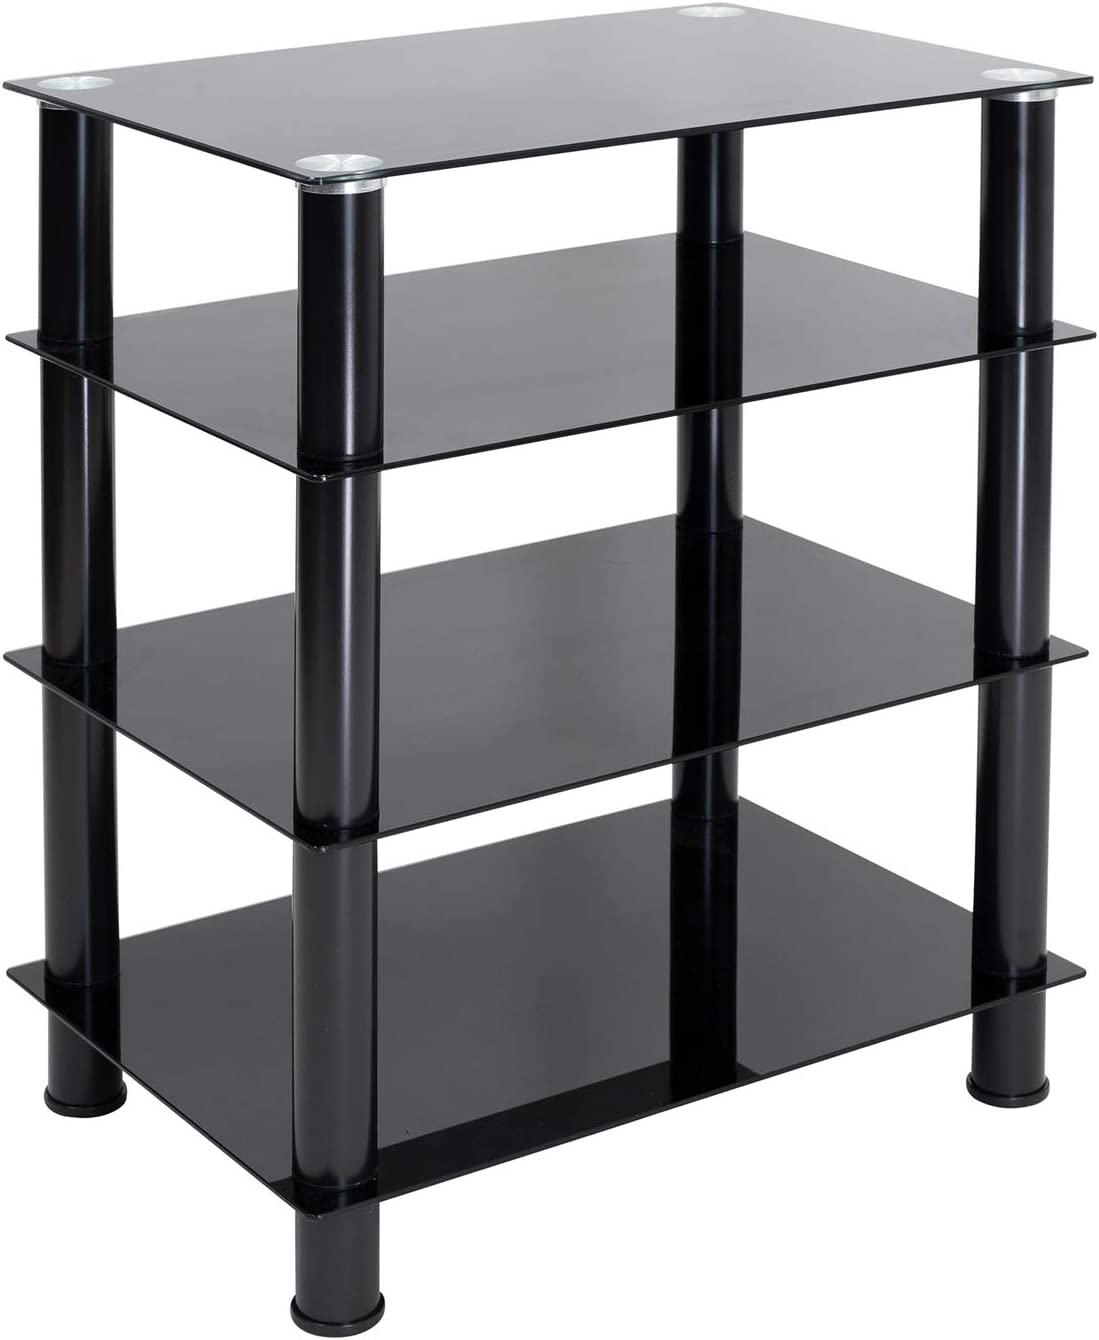 Mount-It! Tempered Glass AV Component Media Stand, Audio Tower and Media Center with 4 Shelves, 88 Lbs Capacity, Black Silk (MI-8670)